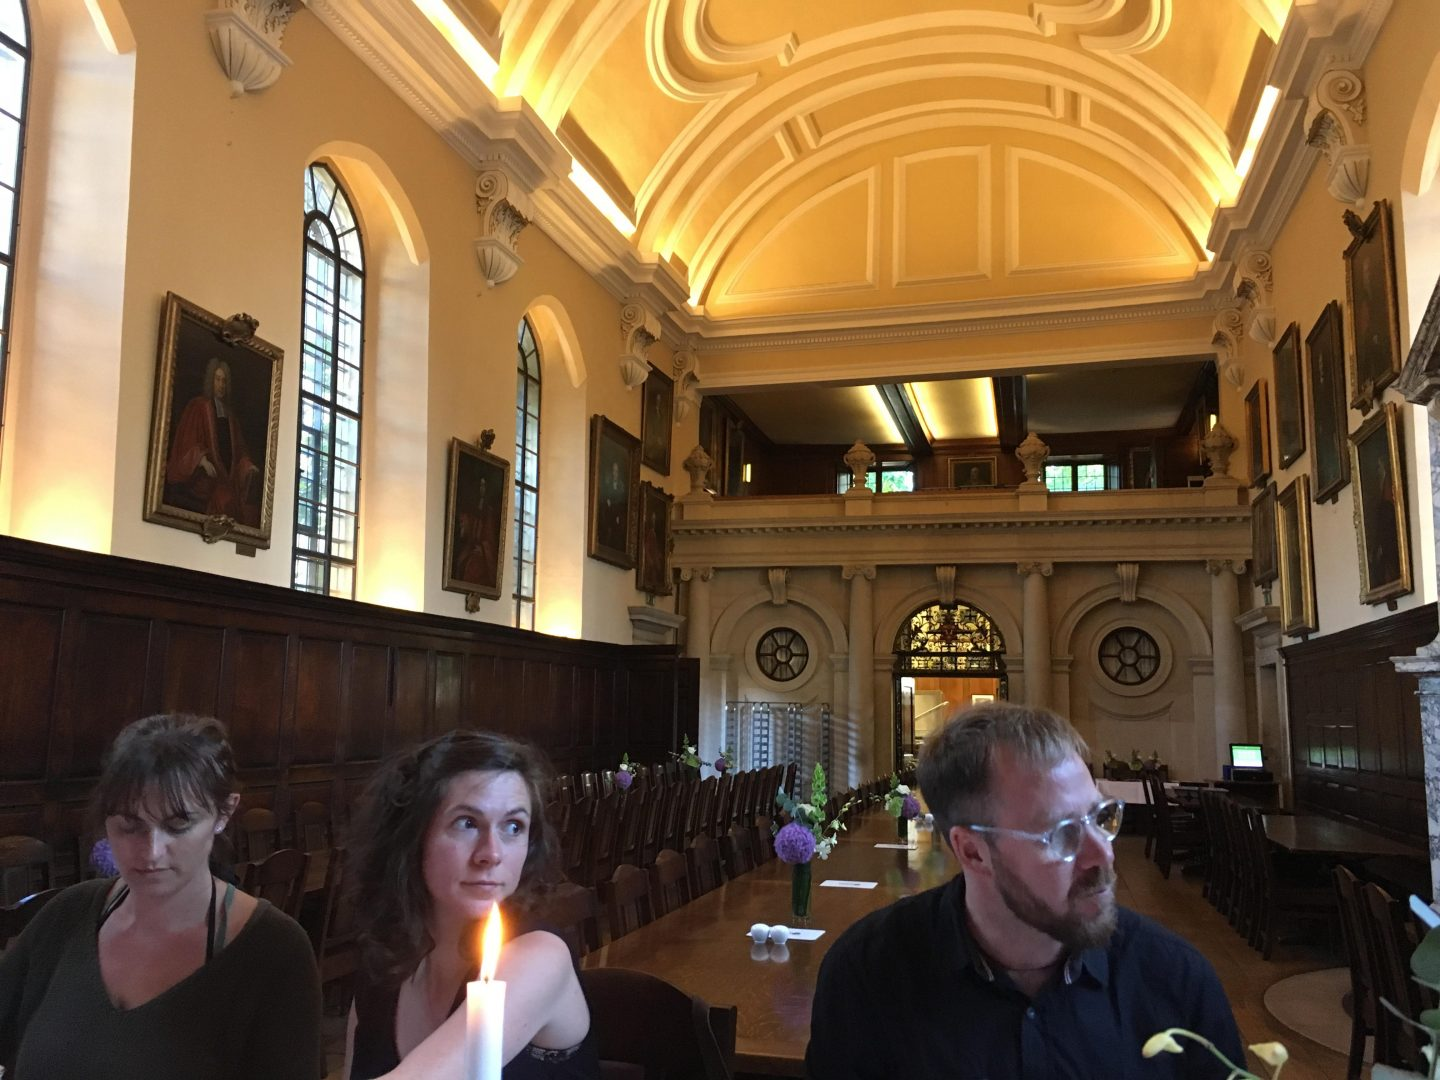 Dinner in the Hall with Fay, Lucy and Ewan enjoying the view.